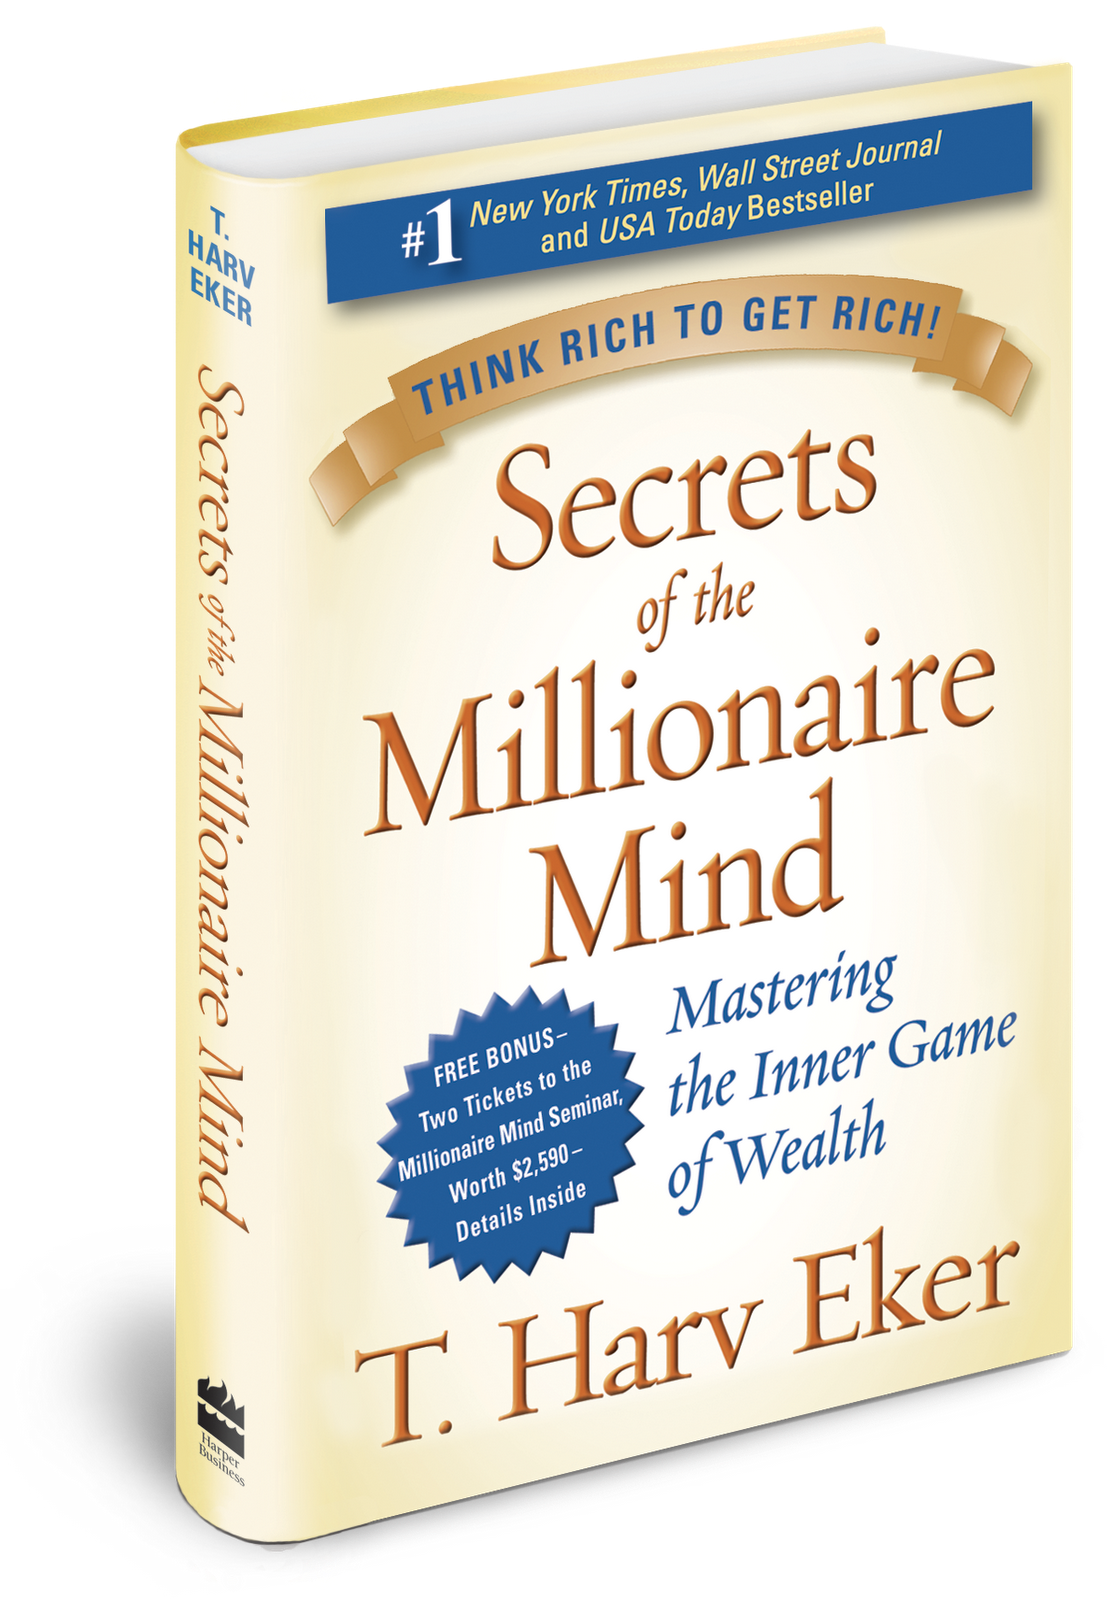 Book review 12: Secrets of a Millionaire Mind